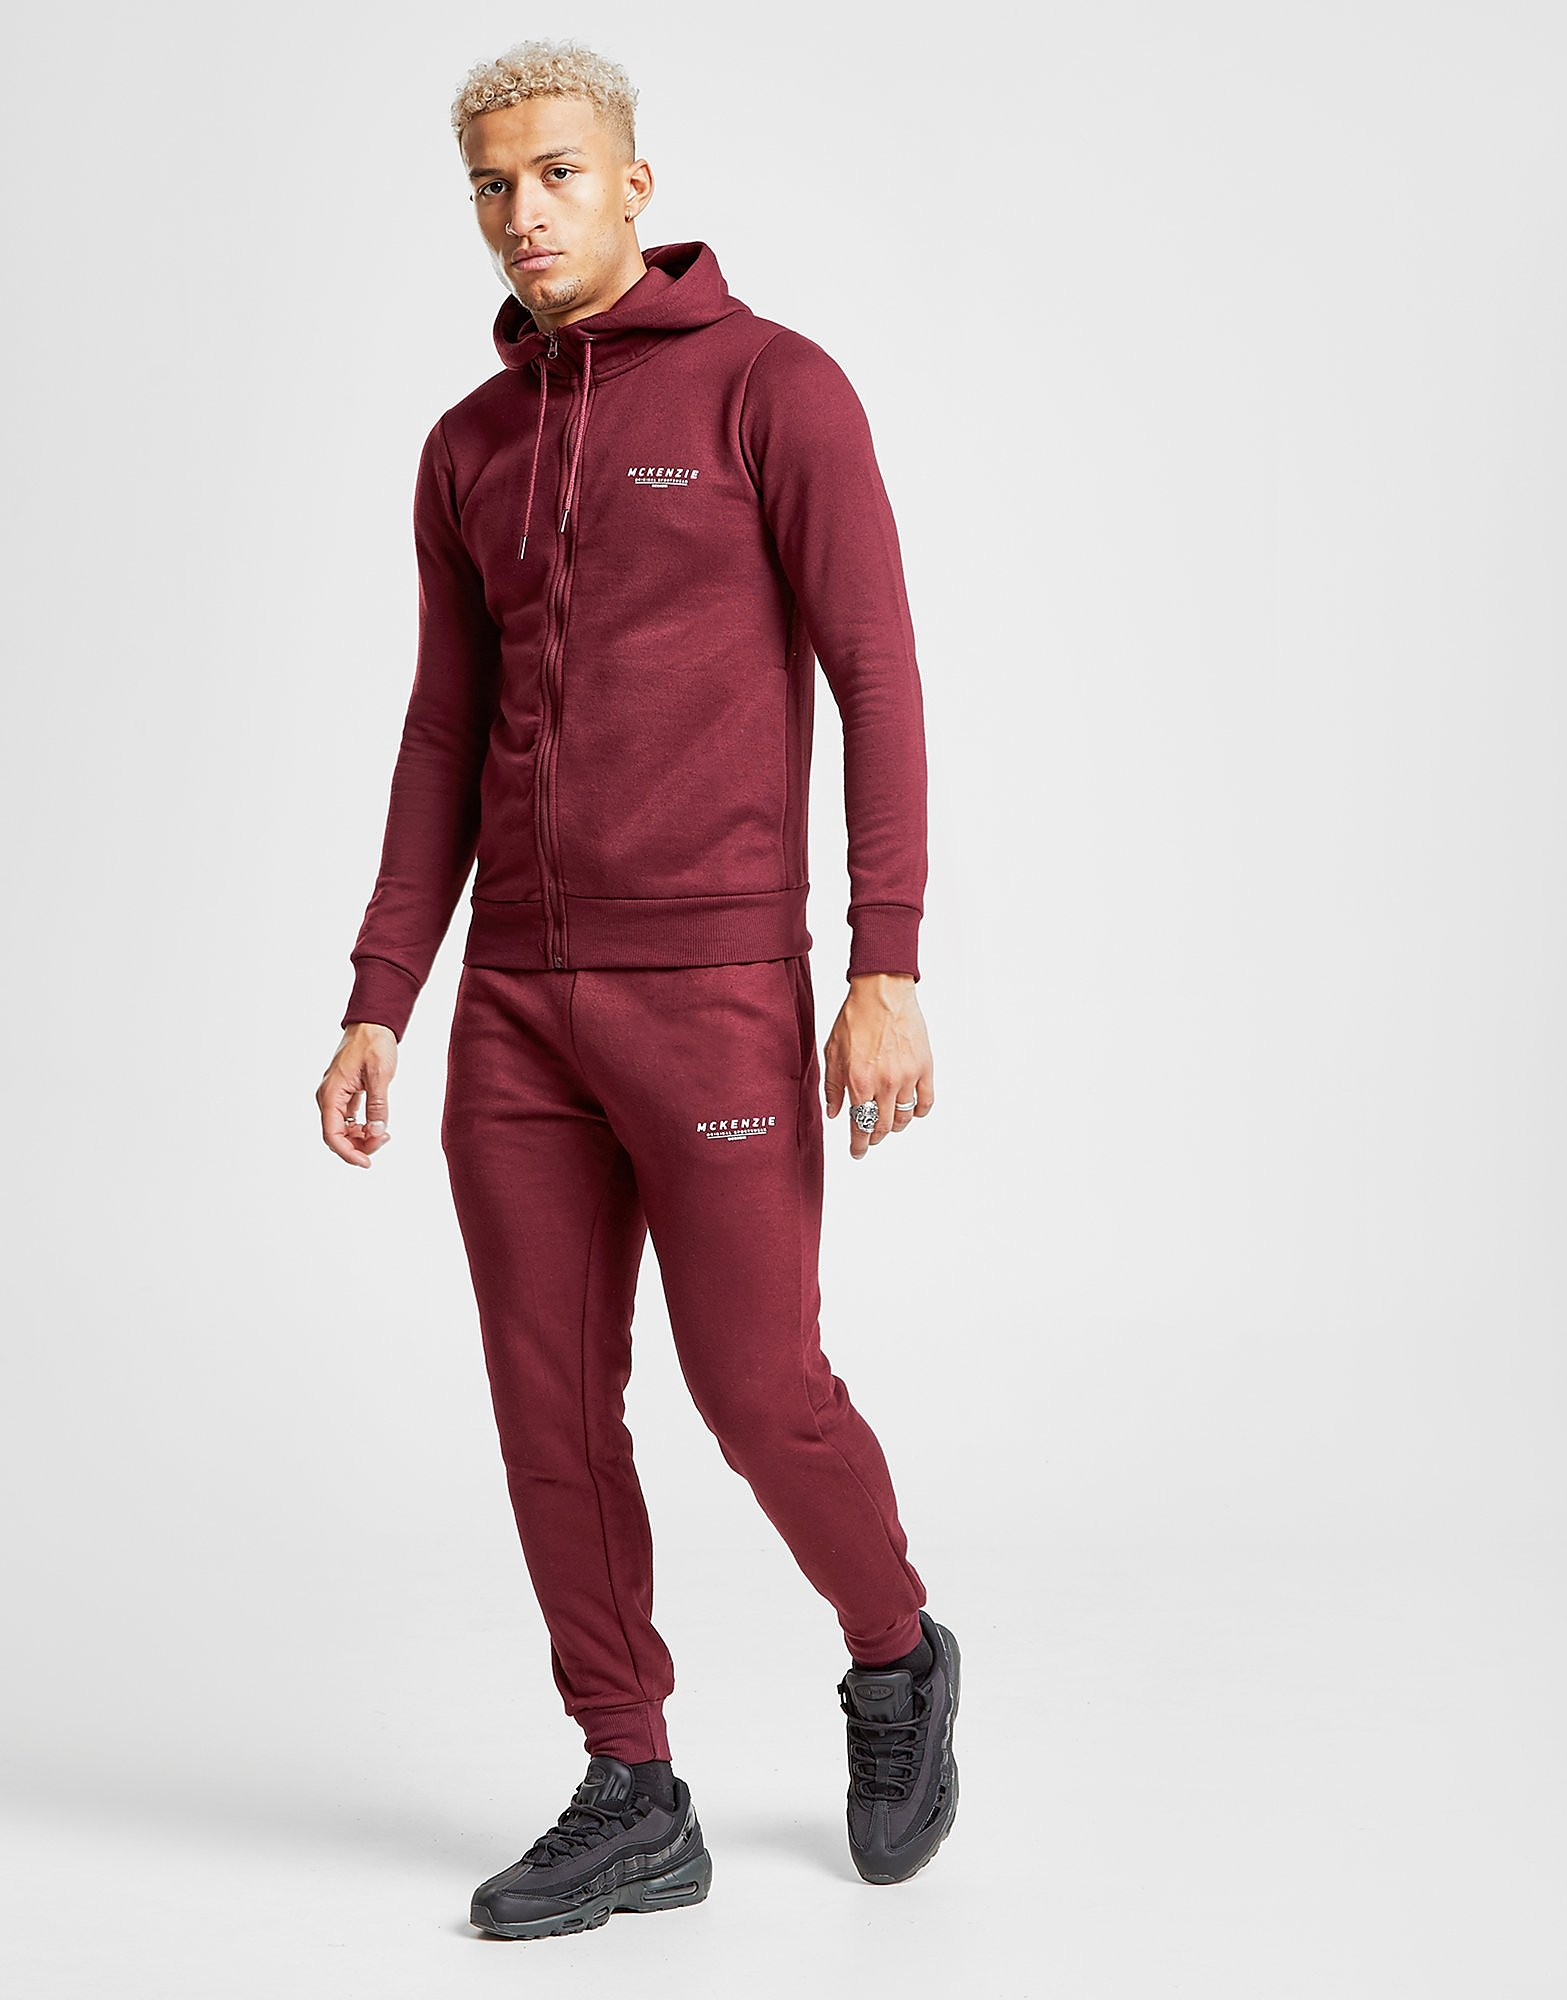 McKenzie Essential Cuffed Track Pants